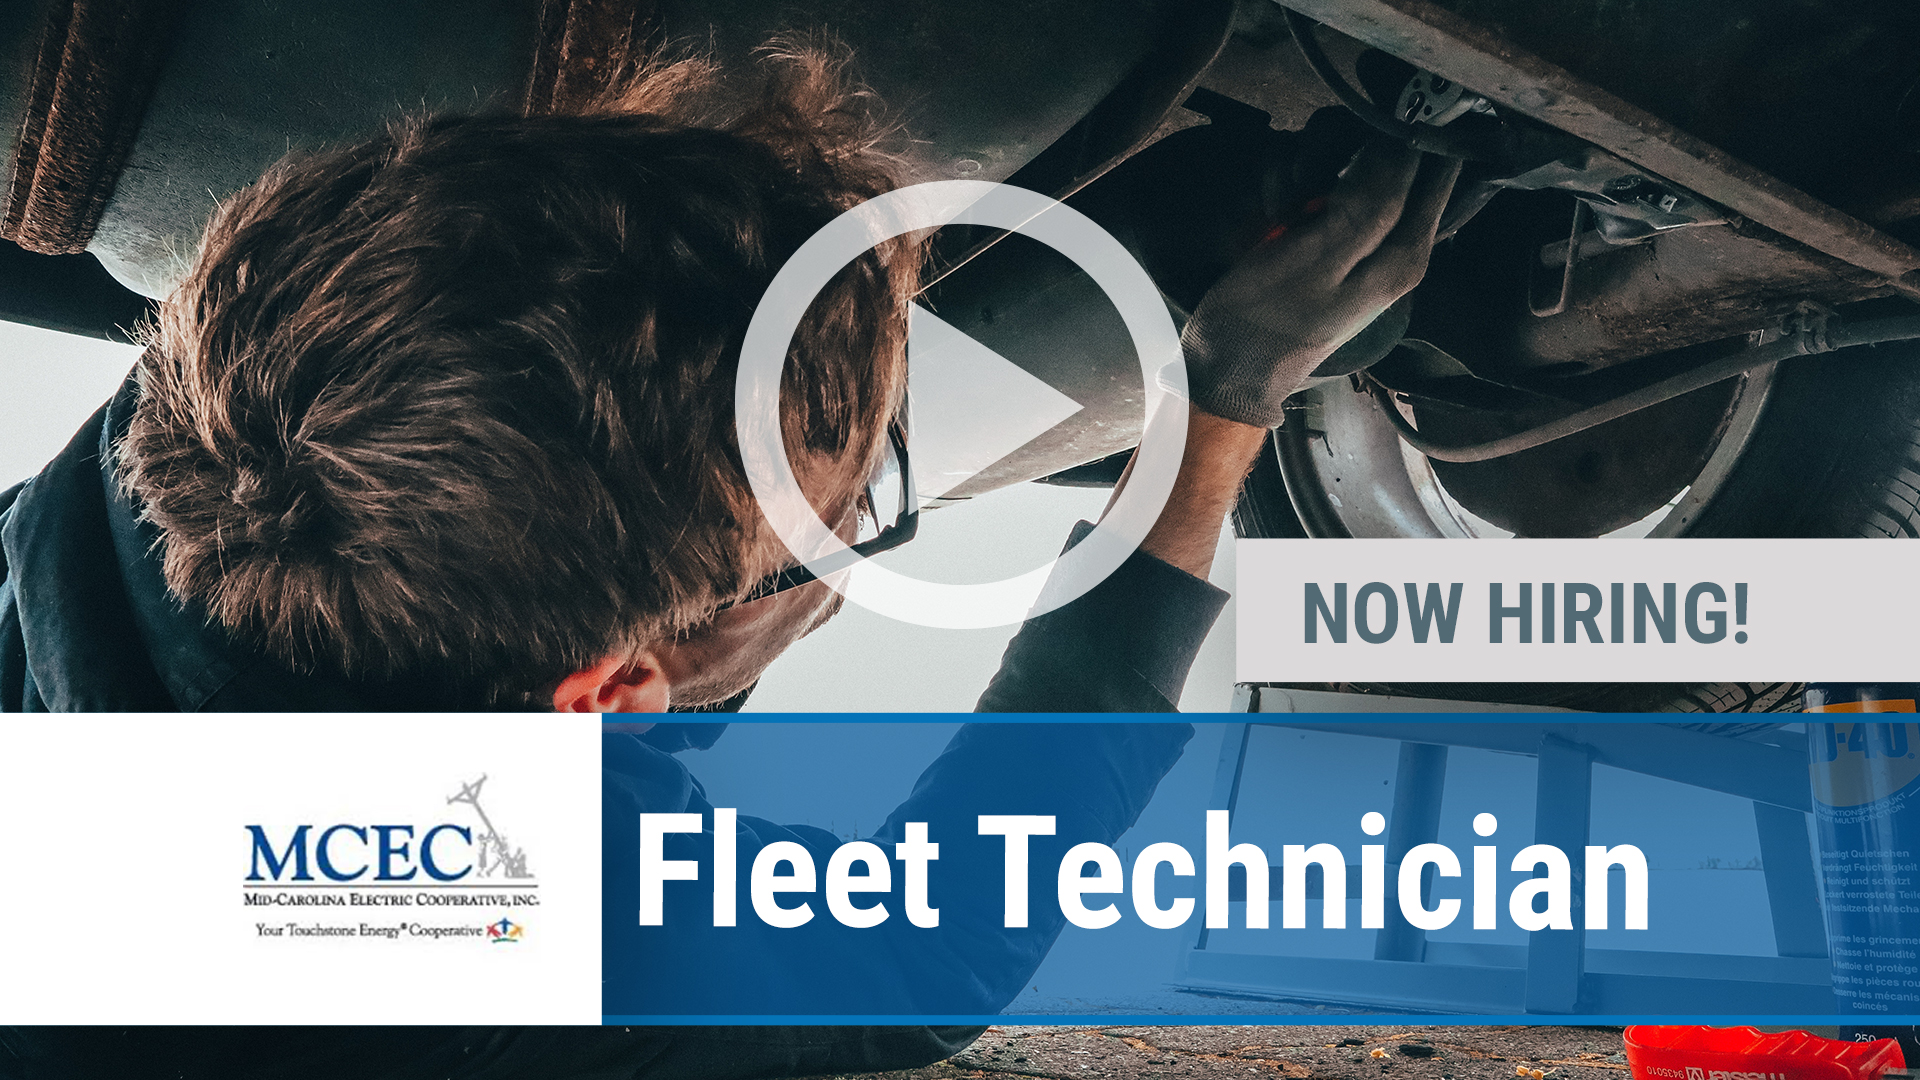 Watch our careers video for available job opening Fleet Technician in Lexington, SC